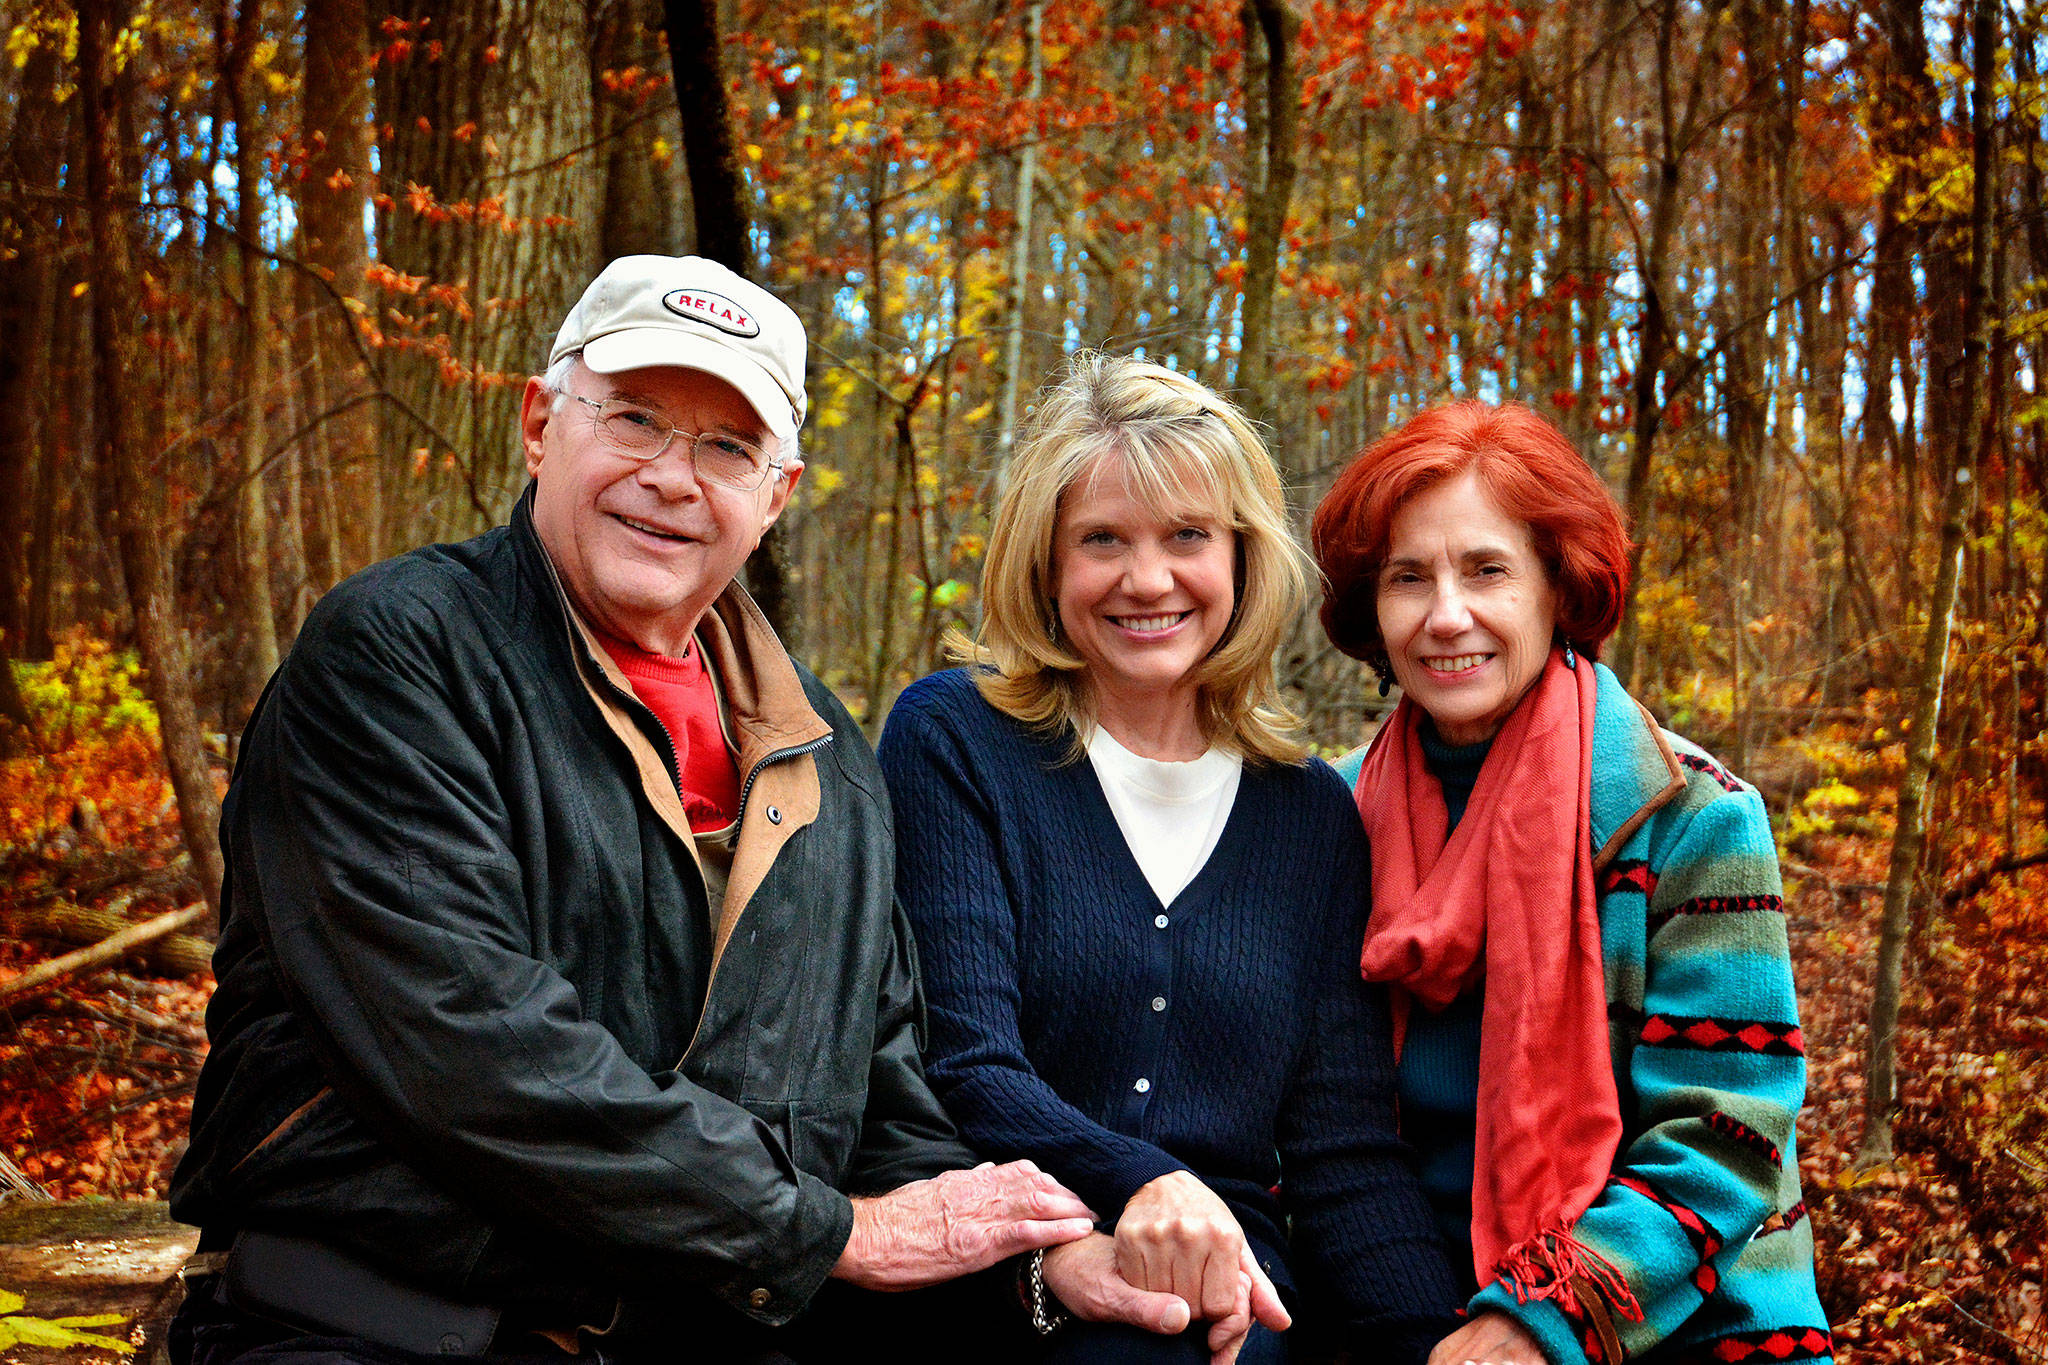 Dennis and Karen Vinar with their daughter, Jean Voxland (center). The couple gave her up for adoption as a newborn when they were teenagers in 1961. Decades later, in 2015, the former high school sweethearts were married in Everett. They have written a book about finding and reuniting with their daughter. (Courtesy Karen and Dennis Vinar)